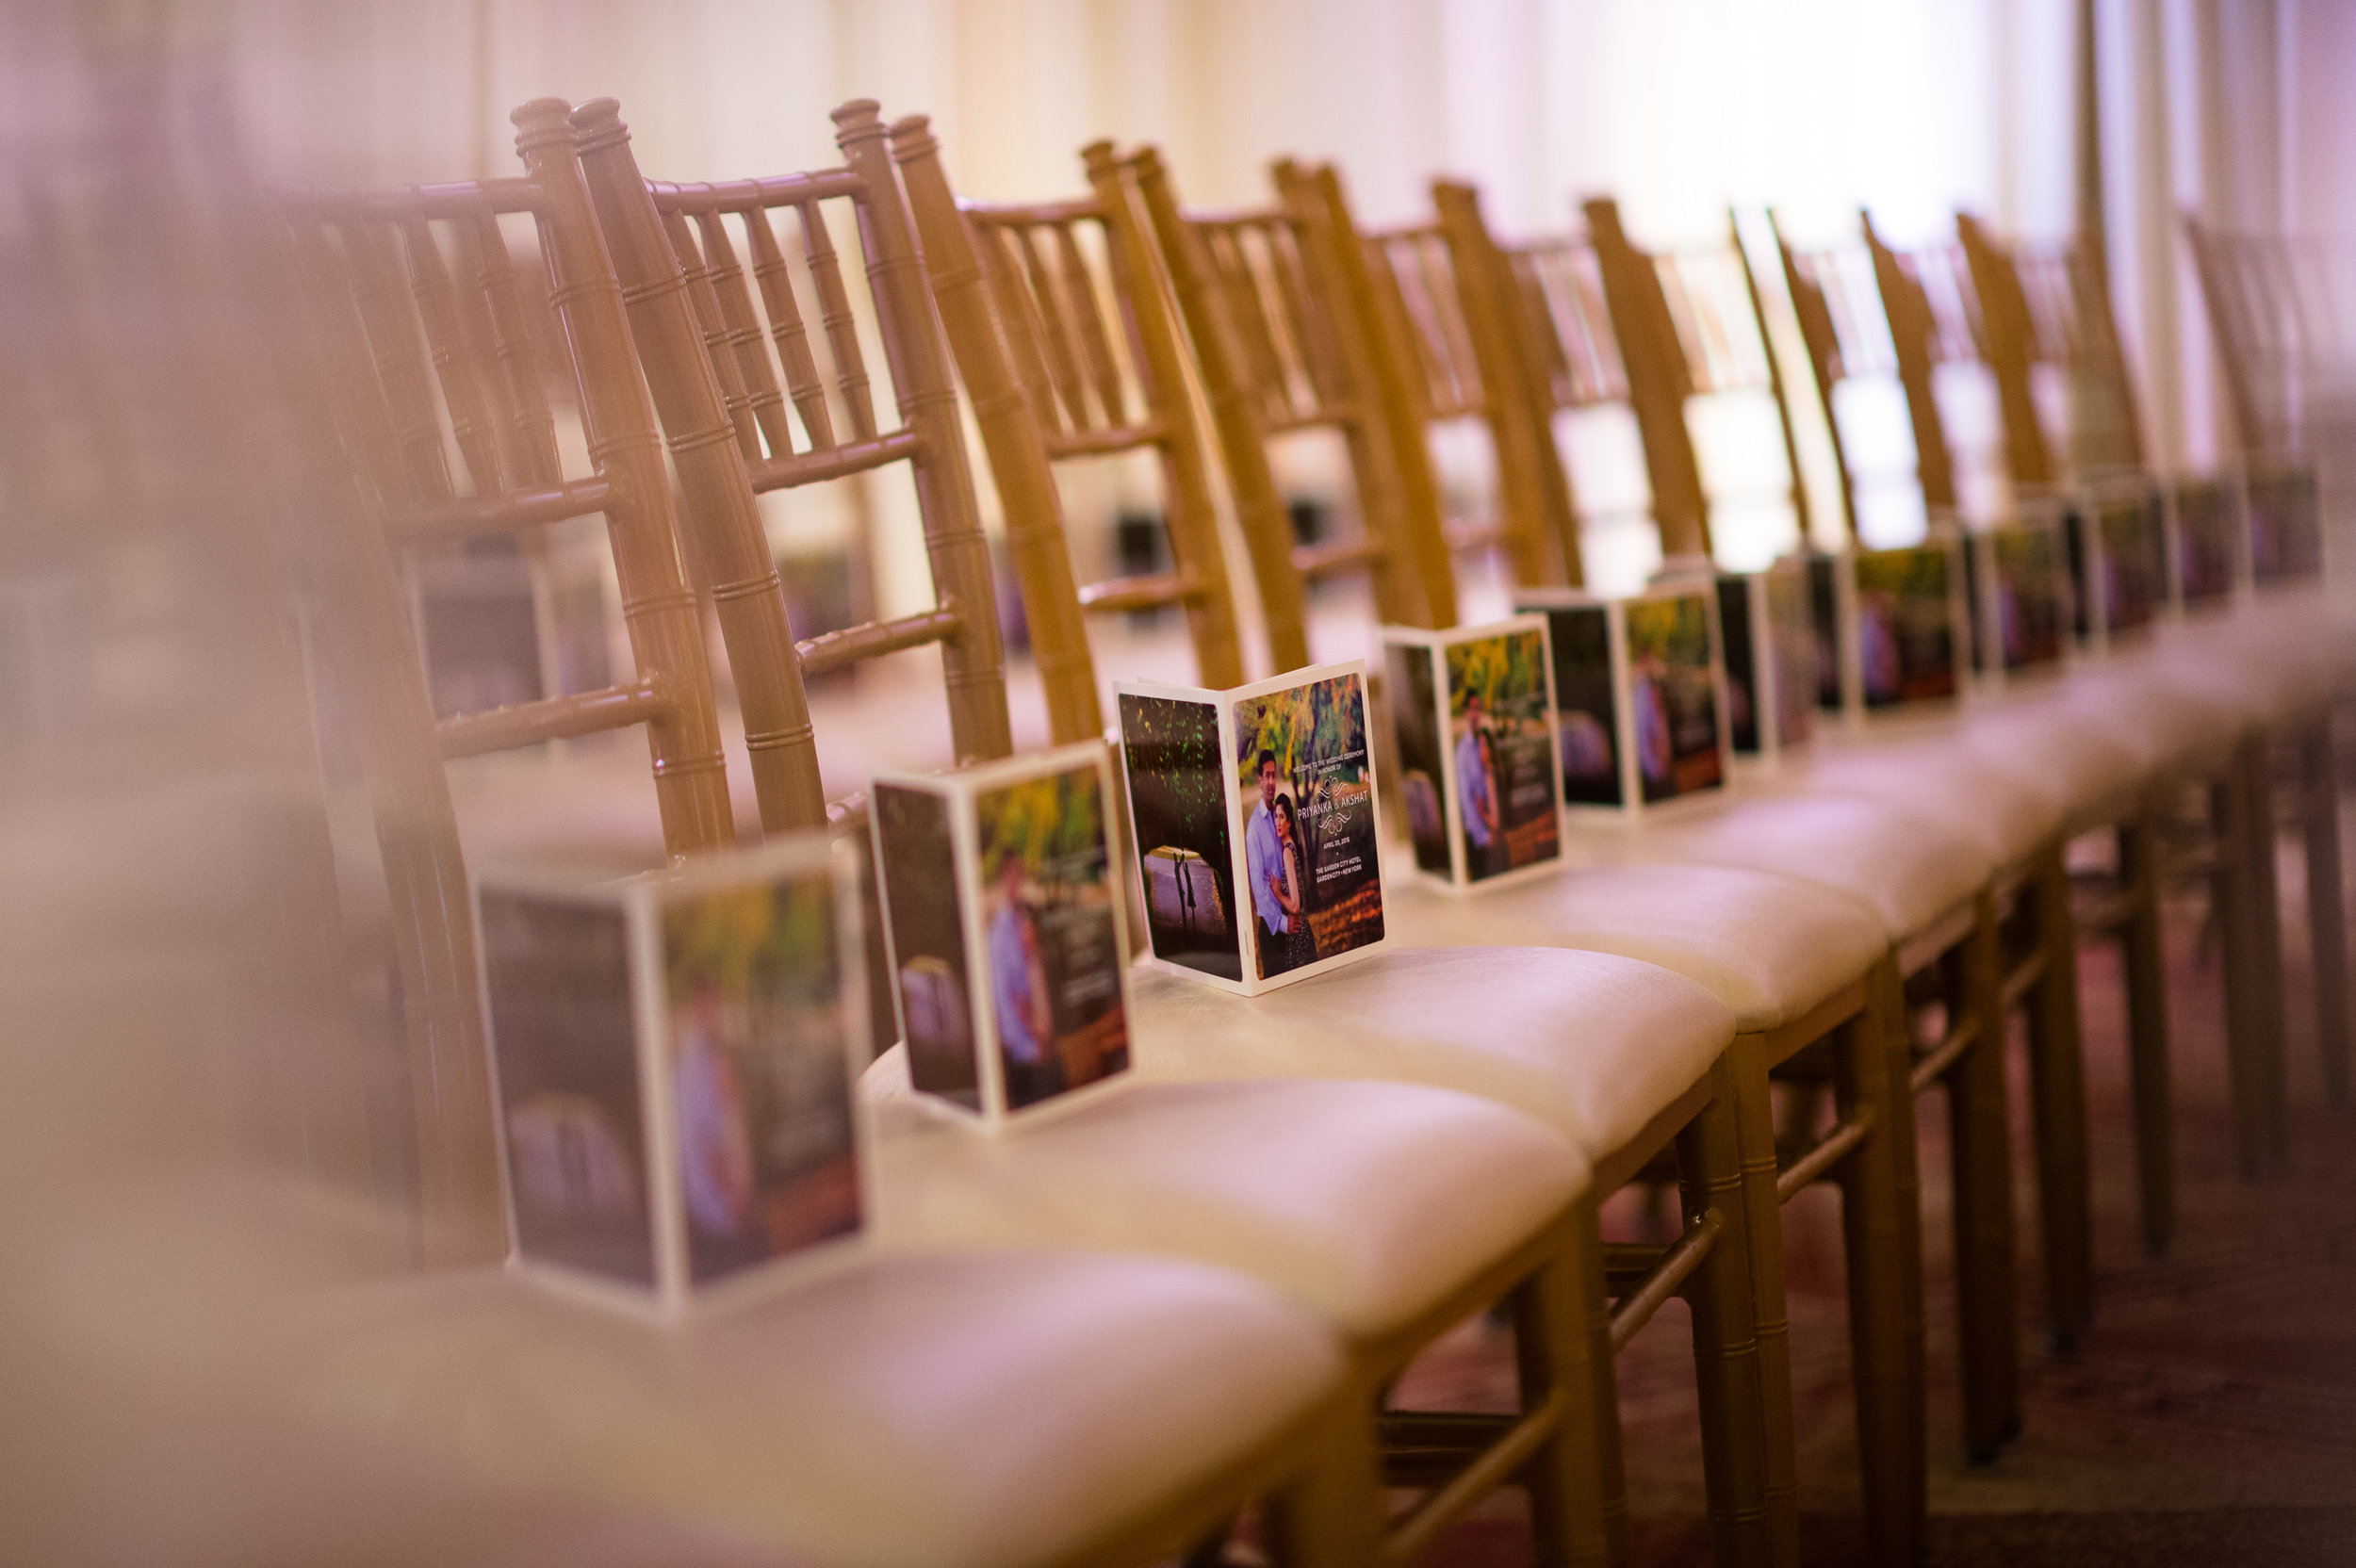 indian ceremony programs on chiavari chairs.JPG